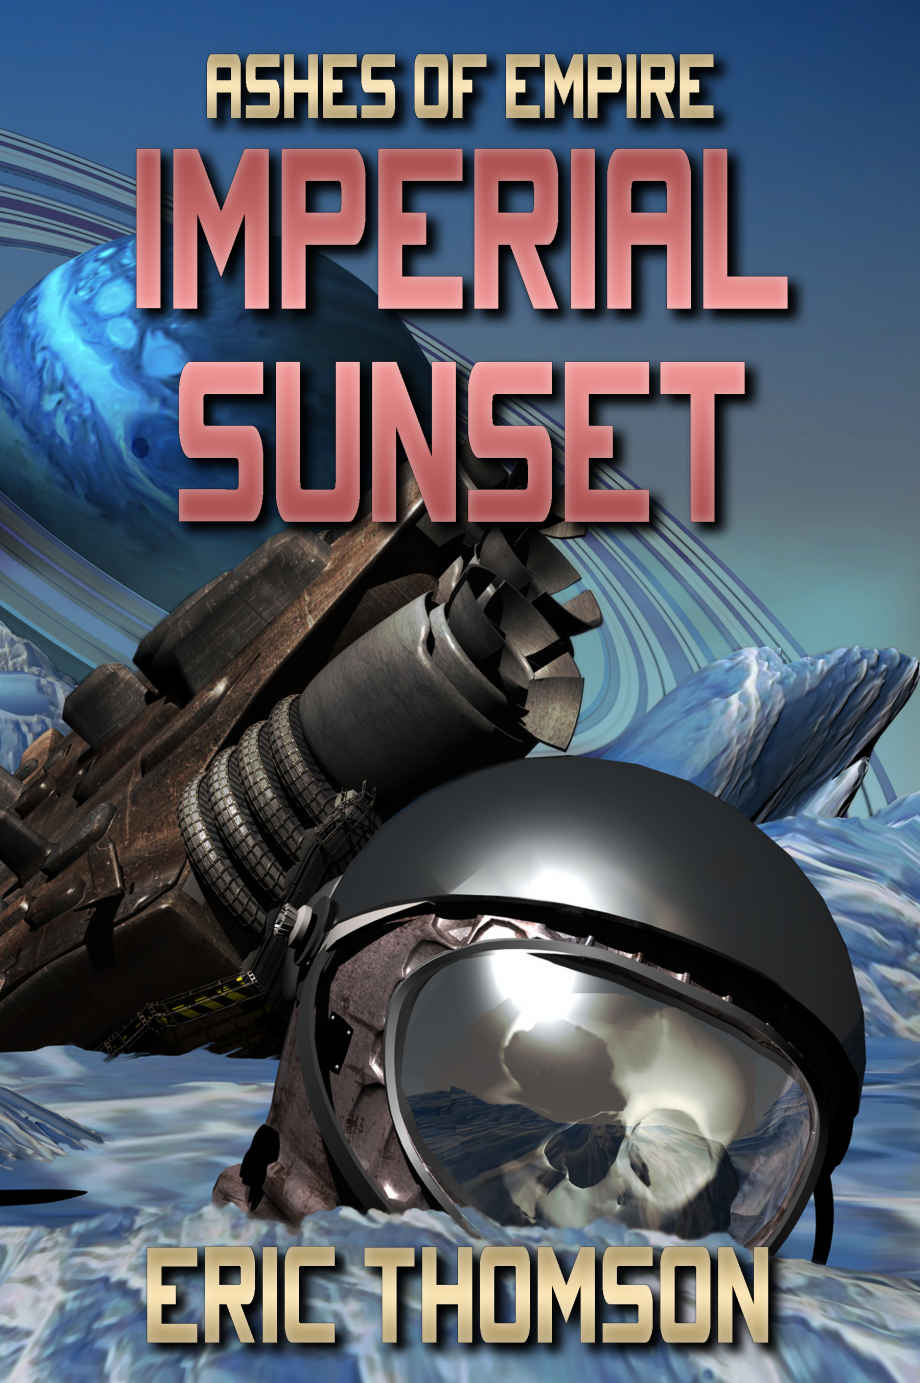 Imperial Sunset: Good implementation of a fairly common theme.